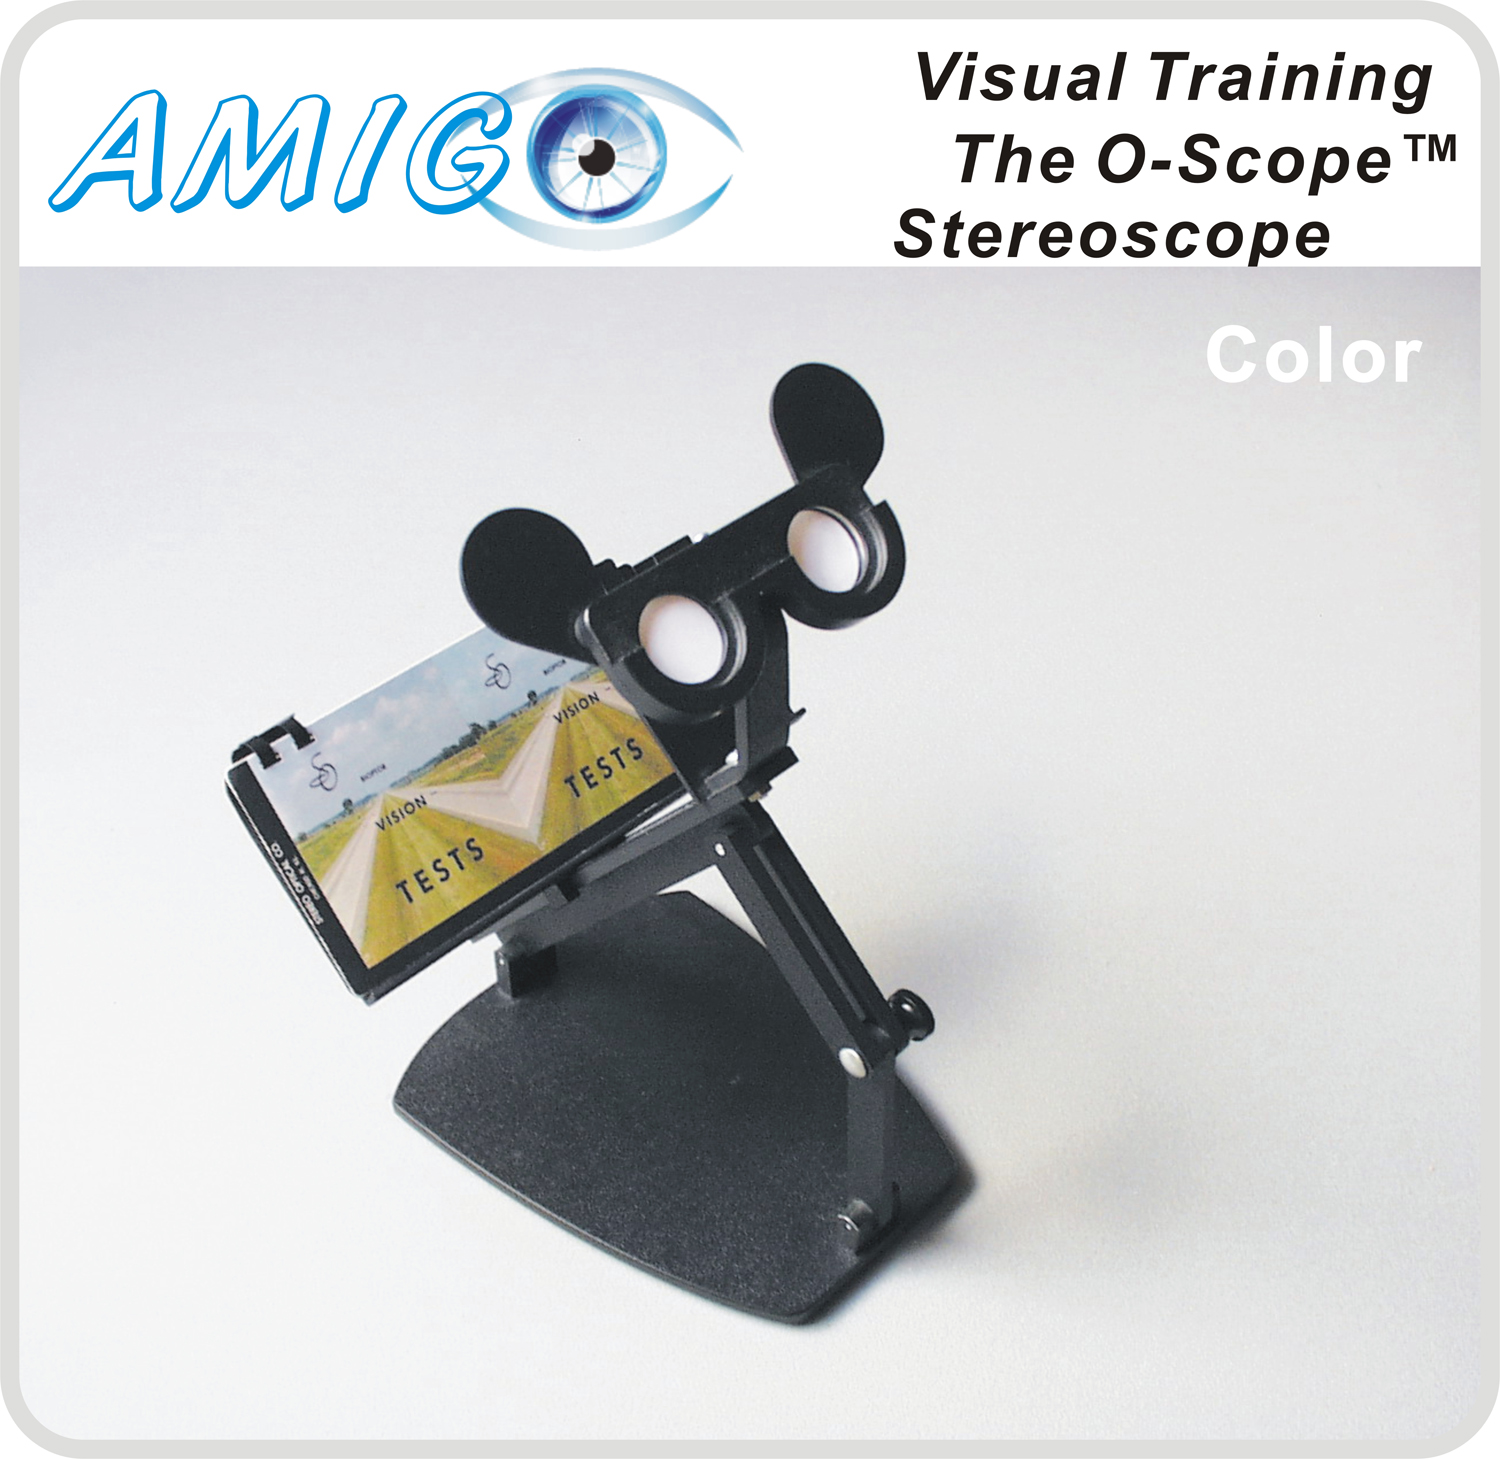 The O-Scope Stereoscope - color